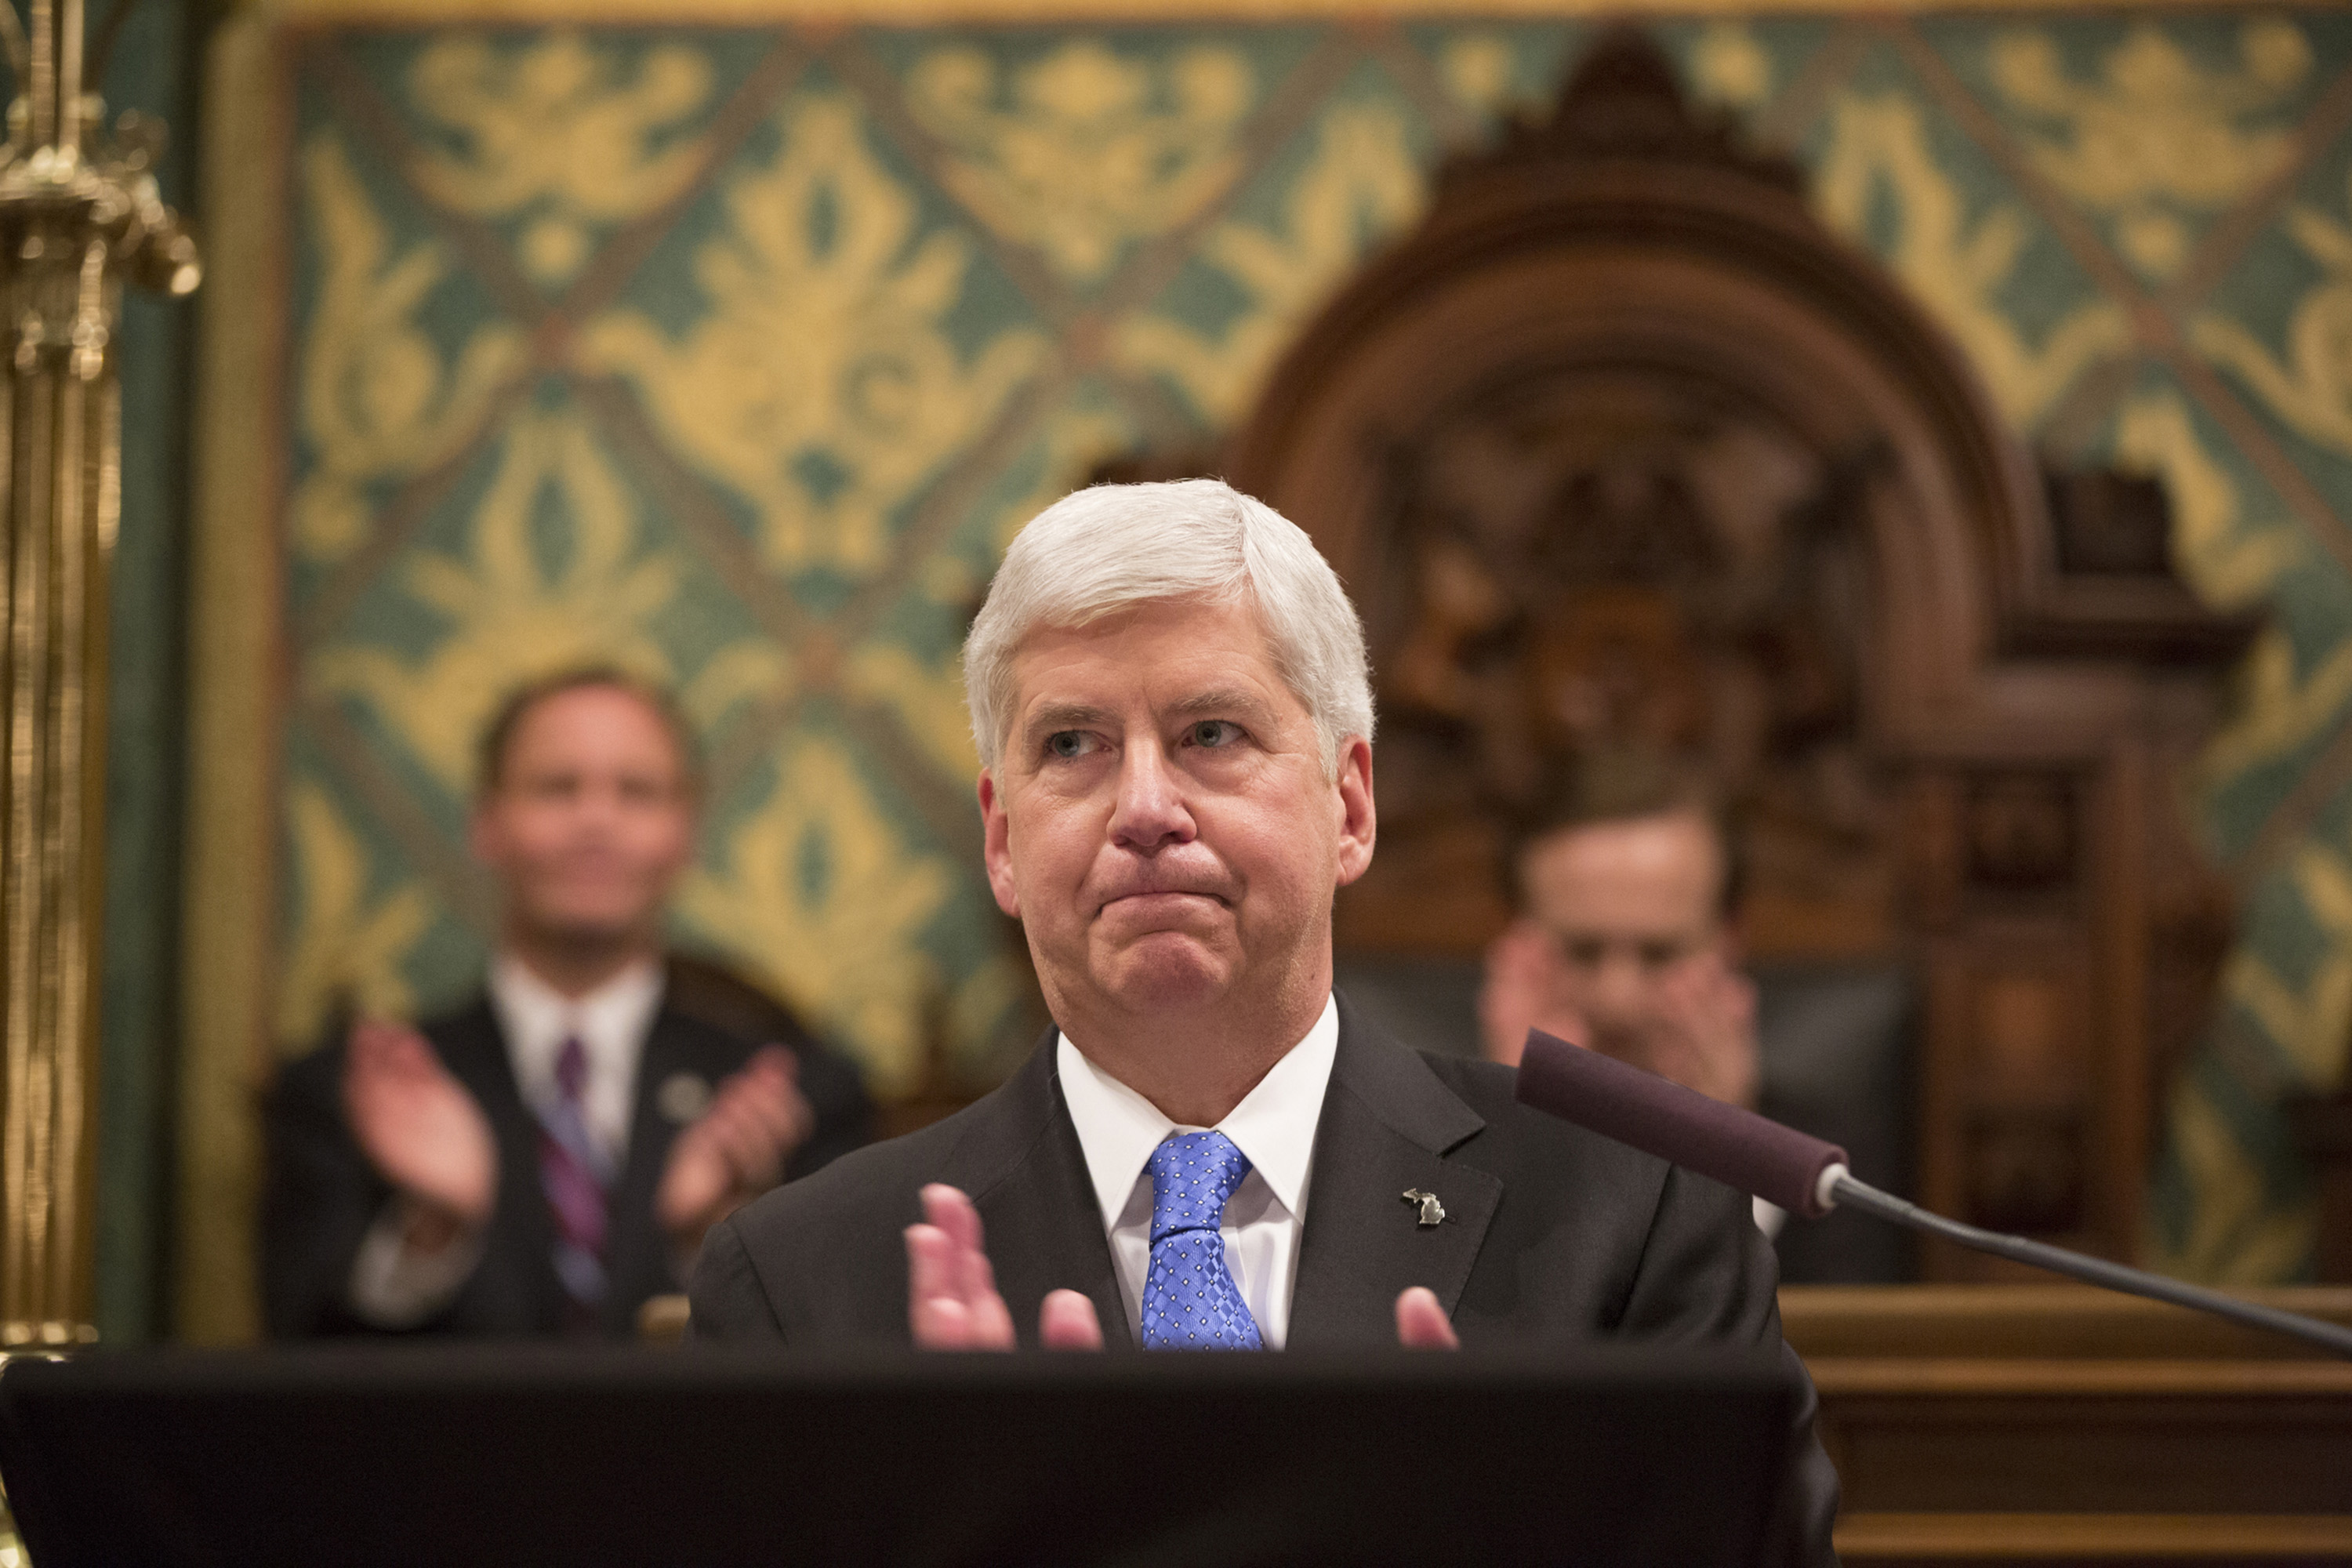 Michigan Gov. Rick Snyder delivers his State of the State in the House of Representatives Chamber on Jan. 23, 2018, at the State Capitol in Lansing, Mich. (Junfu Han/Detroit Free Press/TNS)